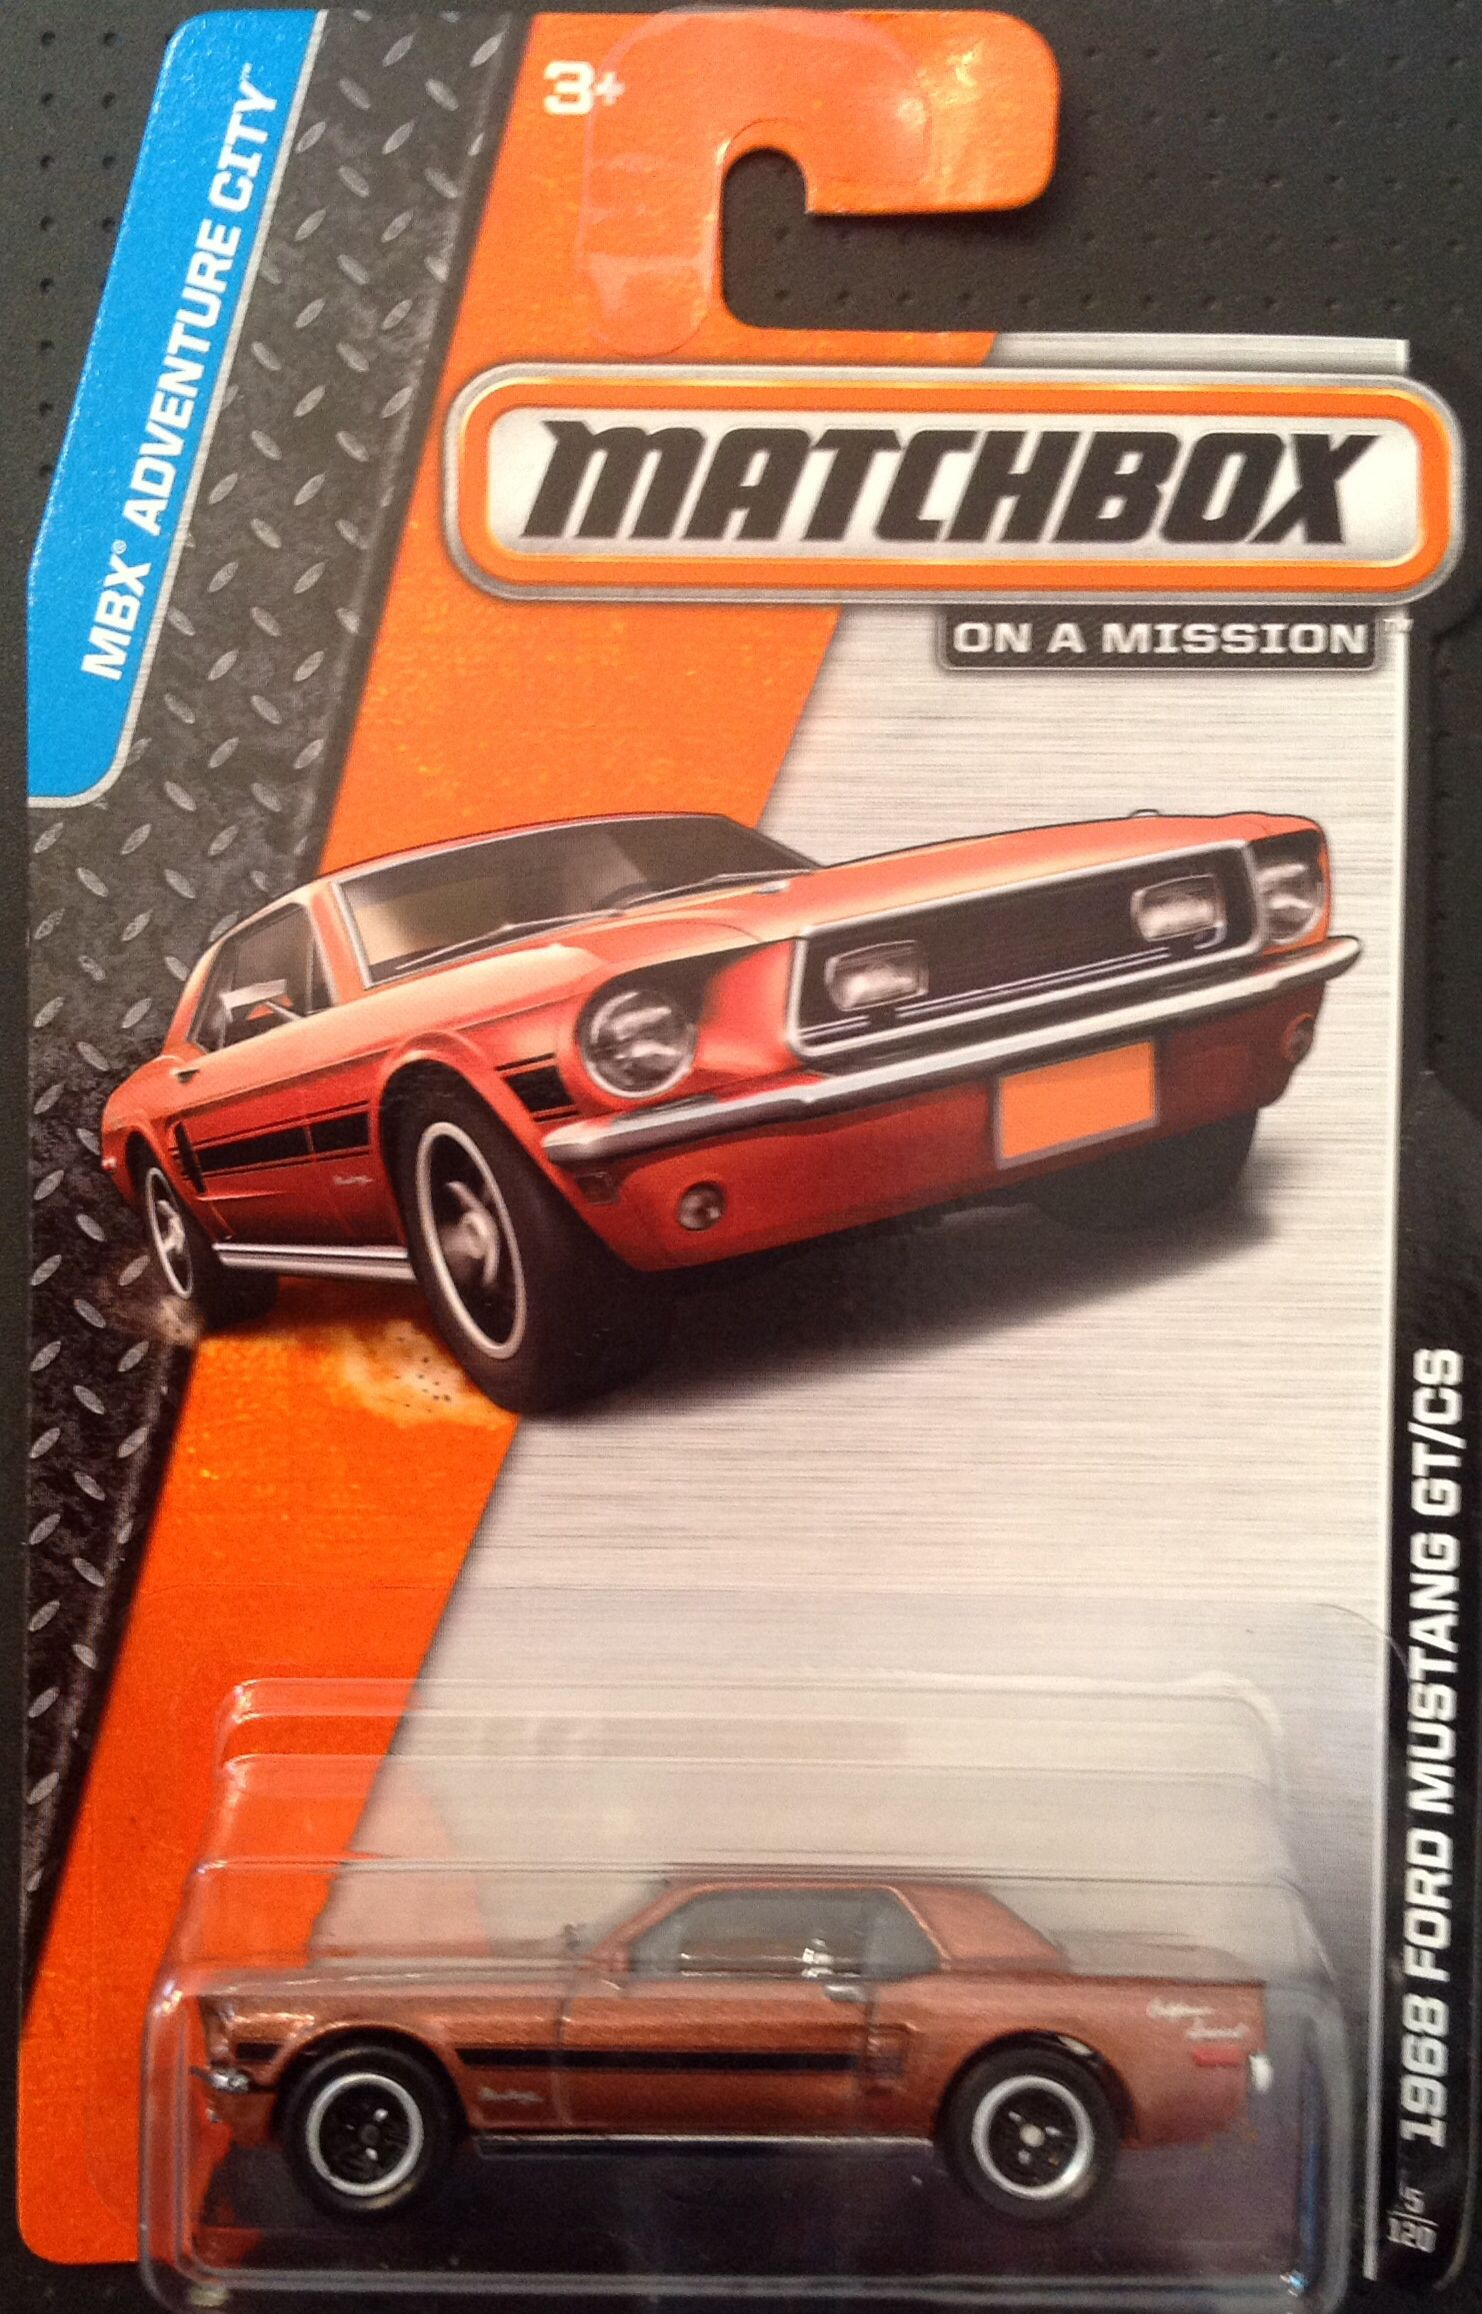 Matchbox on a Mission MBX Adventure City 5 120 1968 Ford Mustang